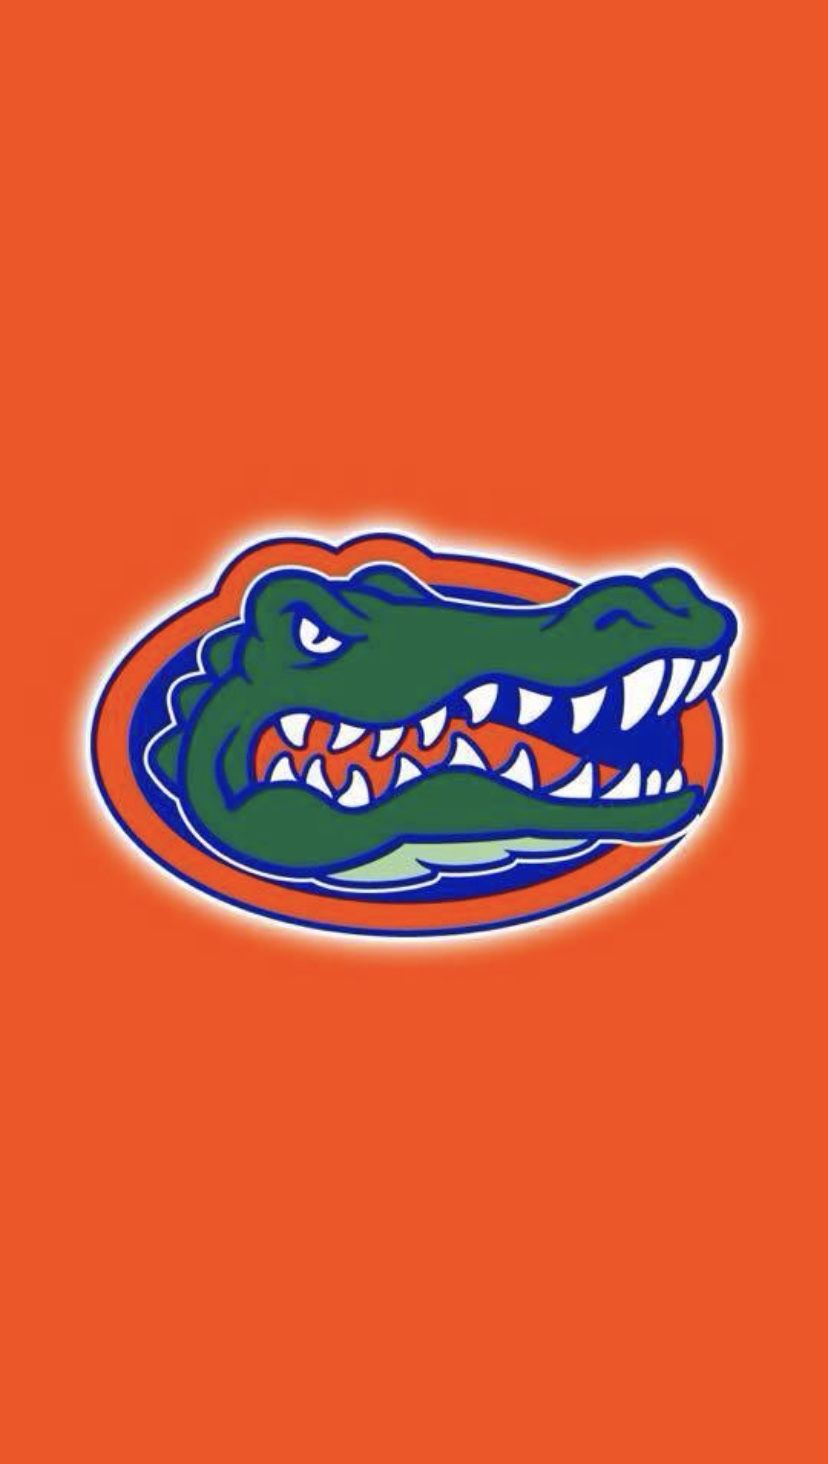 Pin By Taylor On Florida Gators In 2020 Florida Gators Wallpaper Florida Gators Football Wallpaper Florida Gators Football